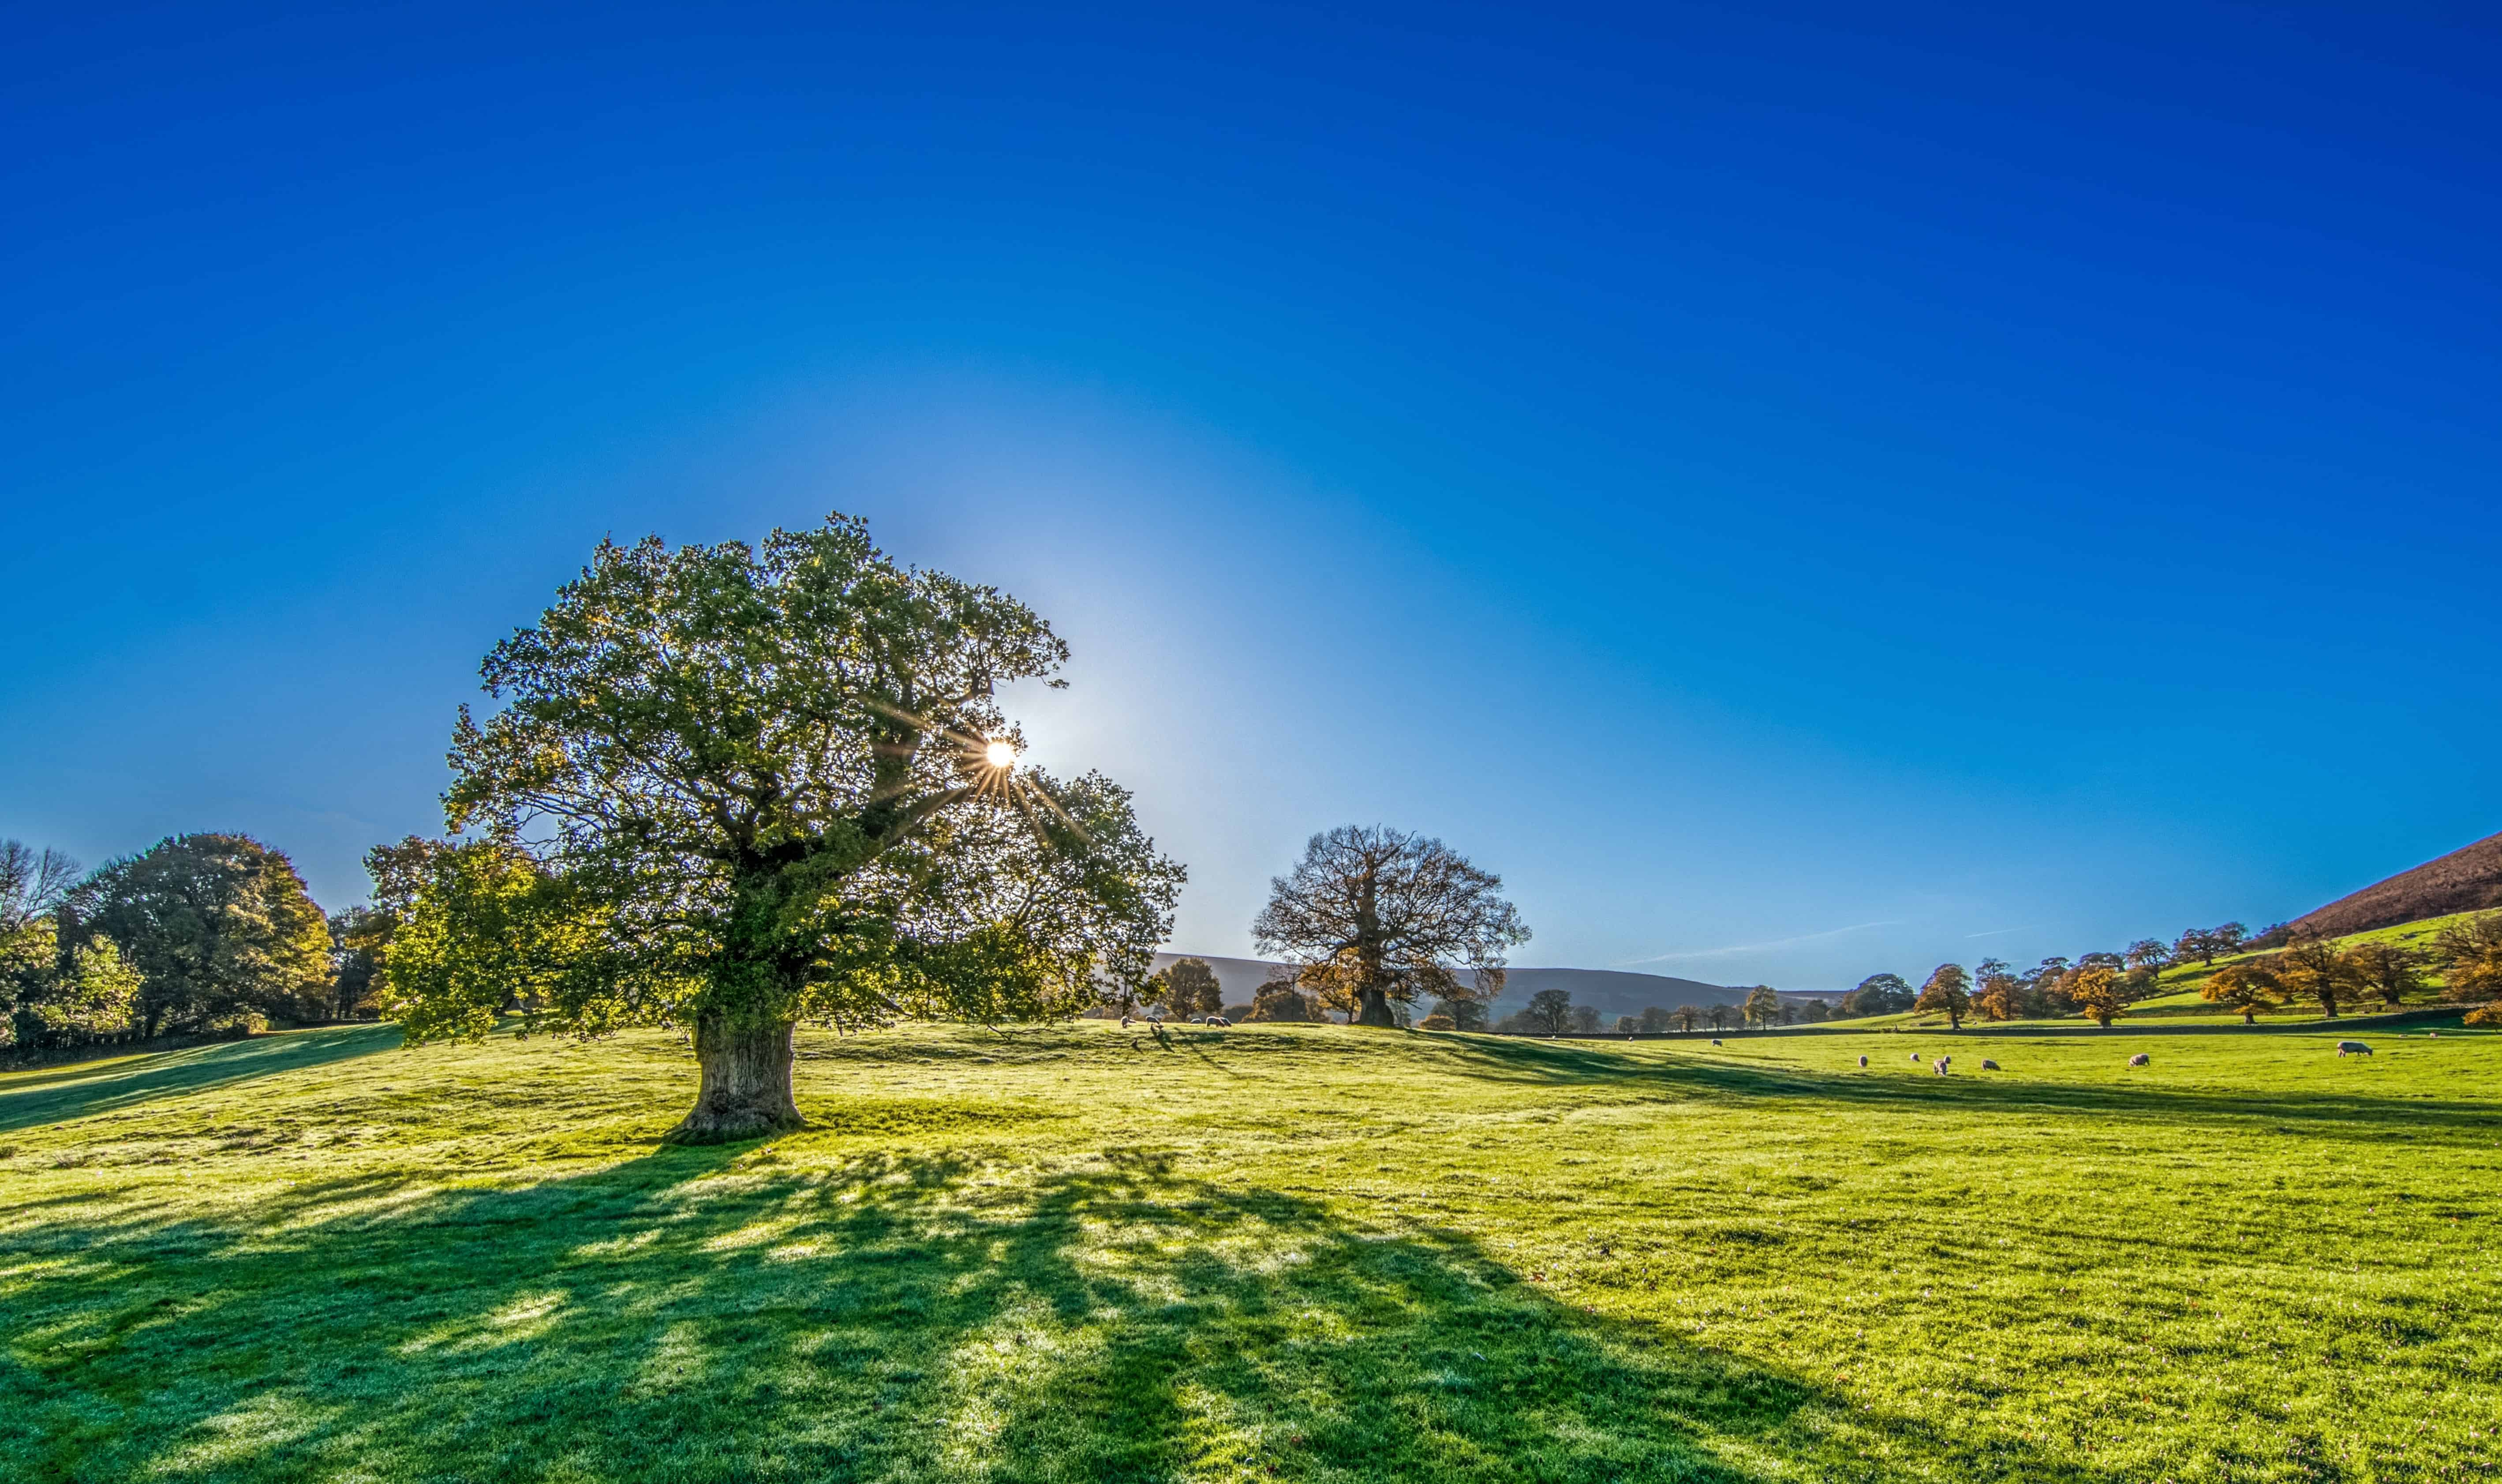 free picture: blue sky, tree, countryside, summer, hill, grass